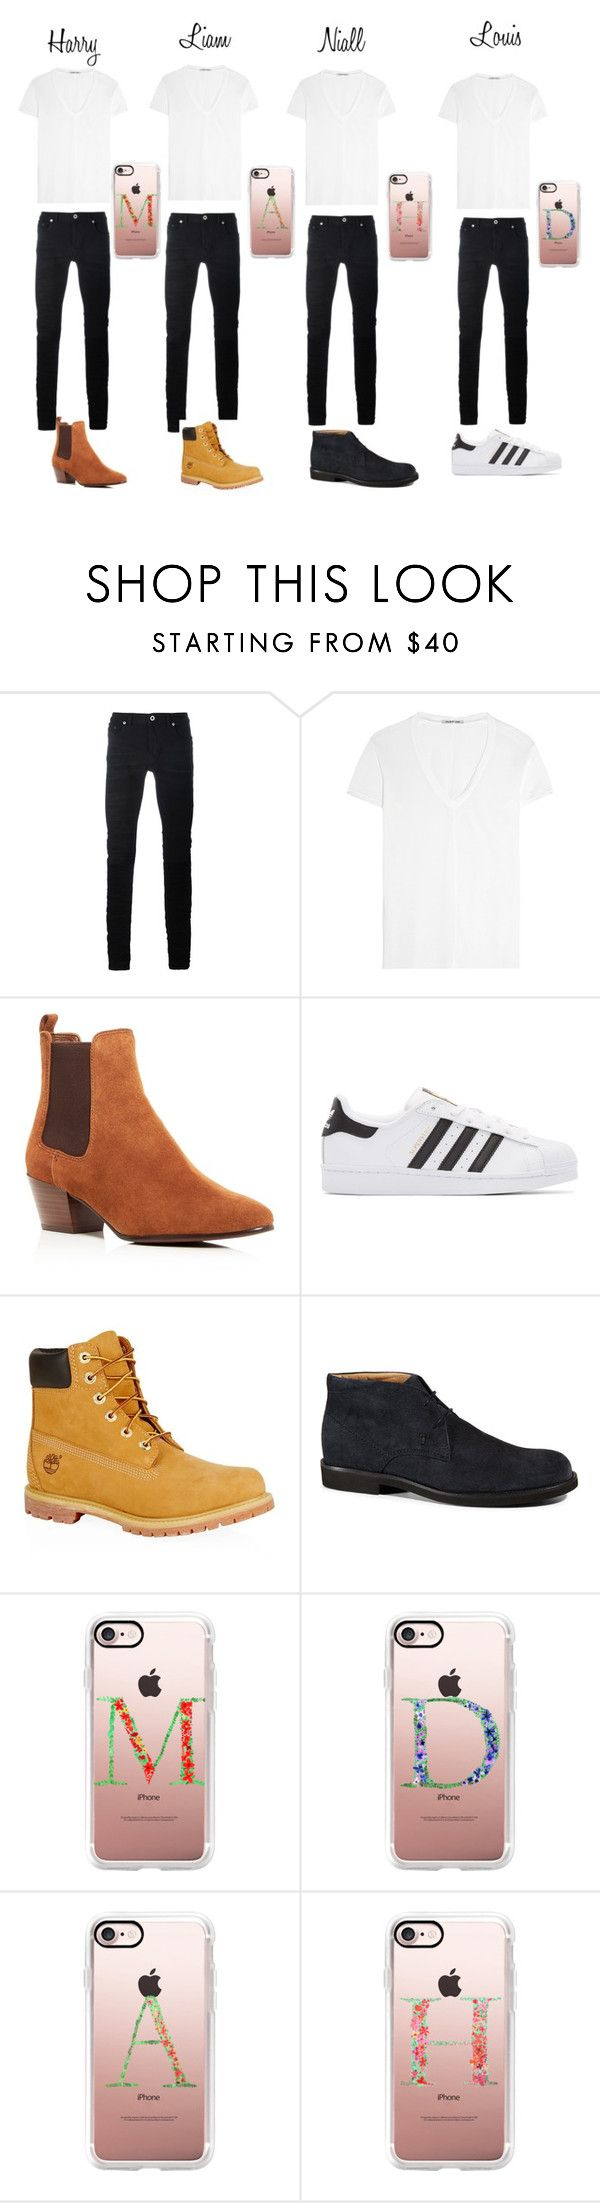 """""""Boys matching outfits -Redemption"""" by mrs-amber-styles1994 ❤ liked on Polyvore featuring Diesel Black Gold, Helmut Lang, Sam Edelman, adidas Originals, Timberland, Tod's, Casetify, men's fashion and menswear"""